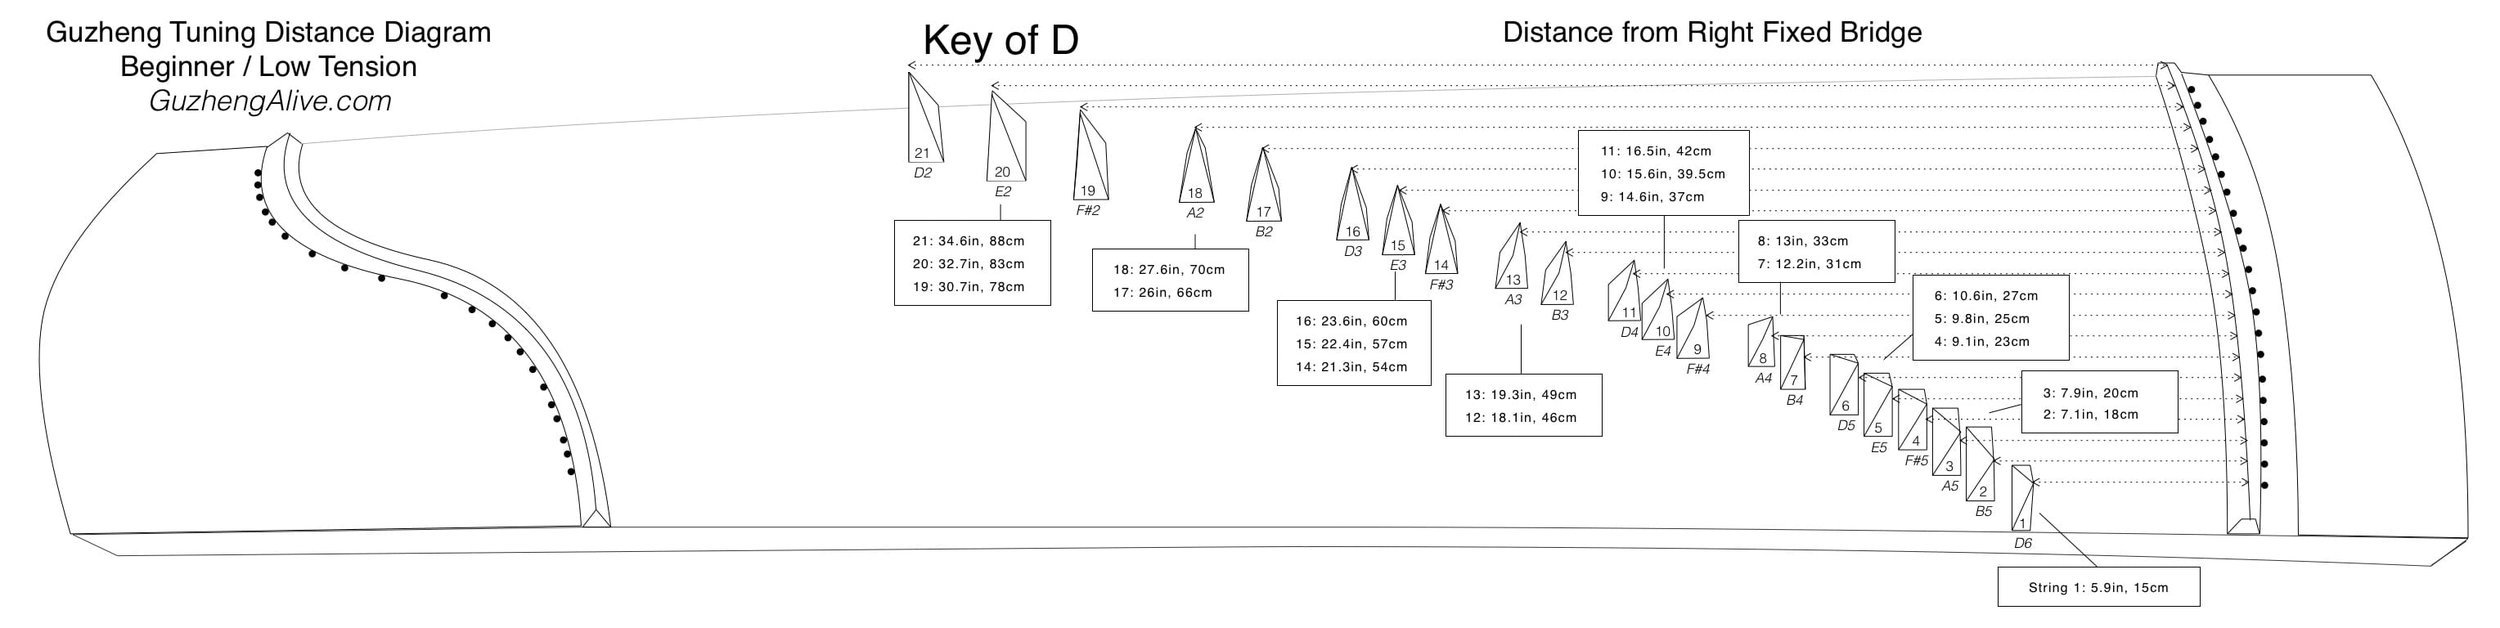 Key of D Guzheng Tuning Diagram.jpg